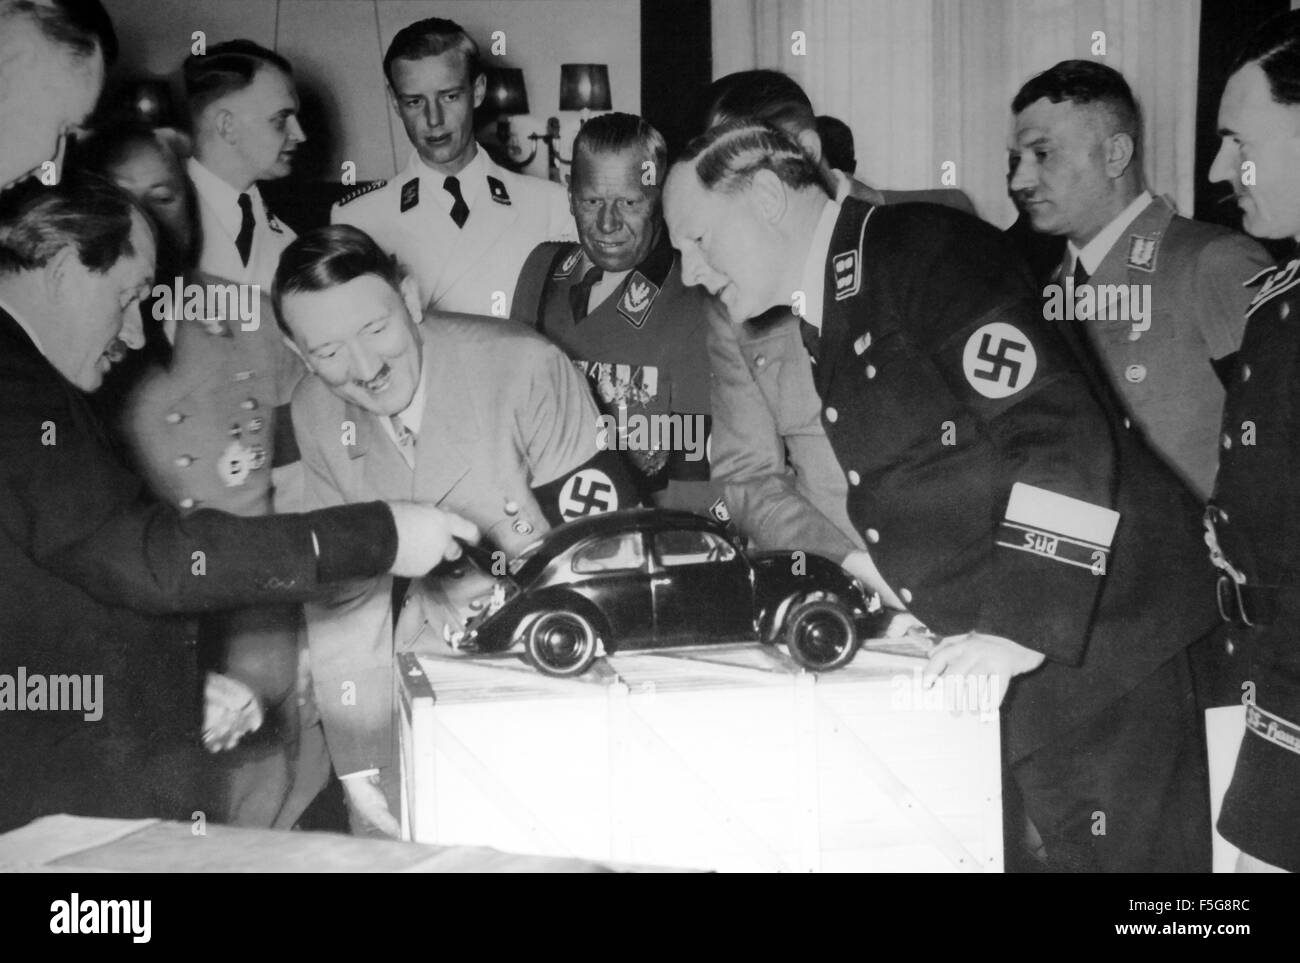 Hitler And Volkswagen Beetle Stock Photo 89483280 Alamy